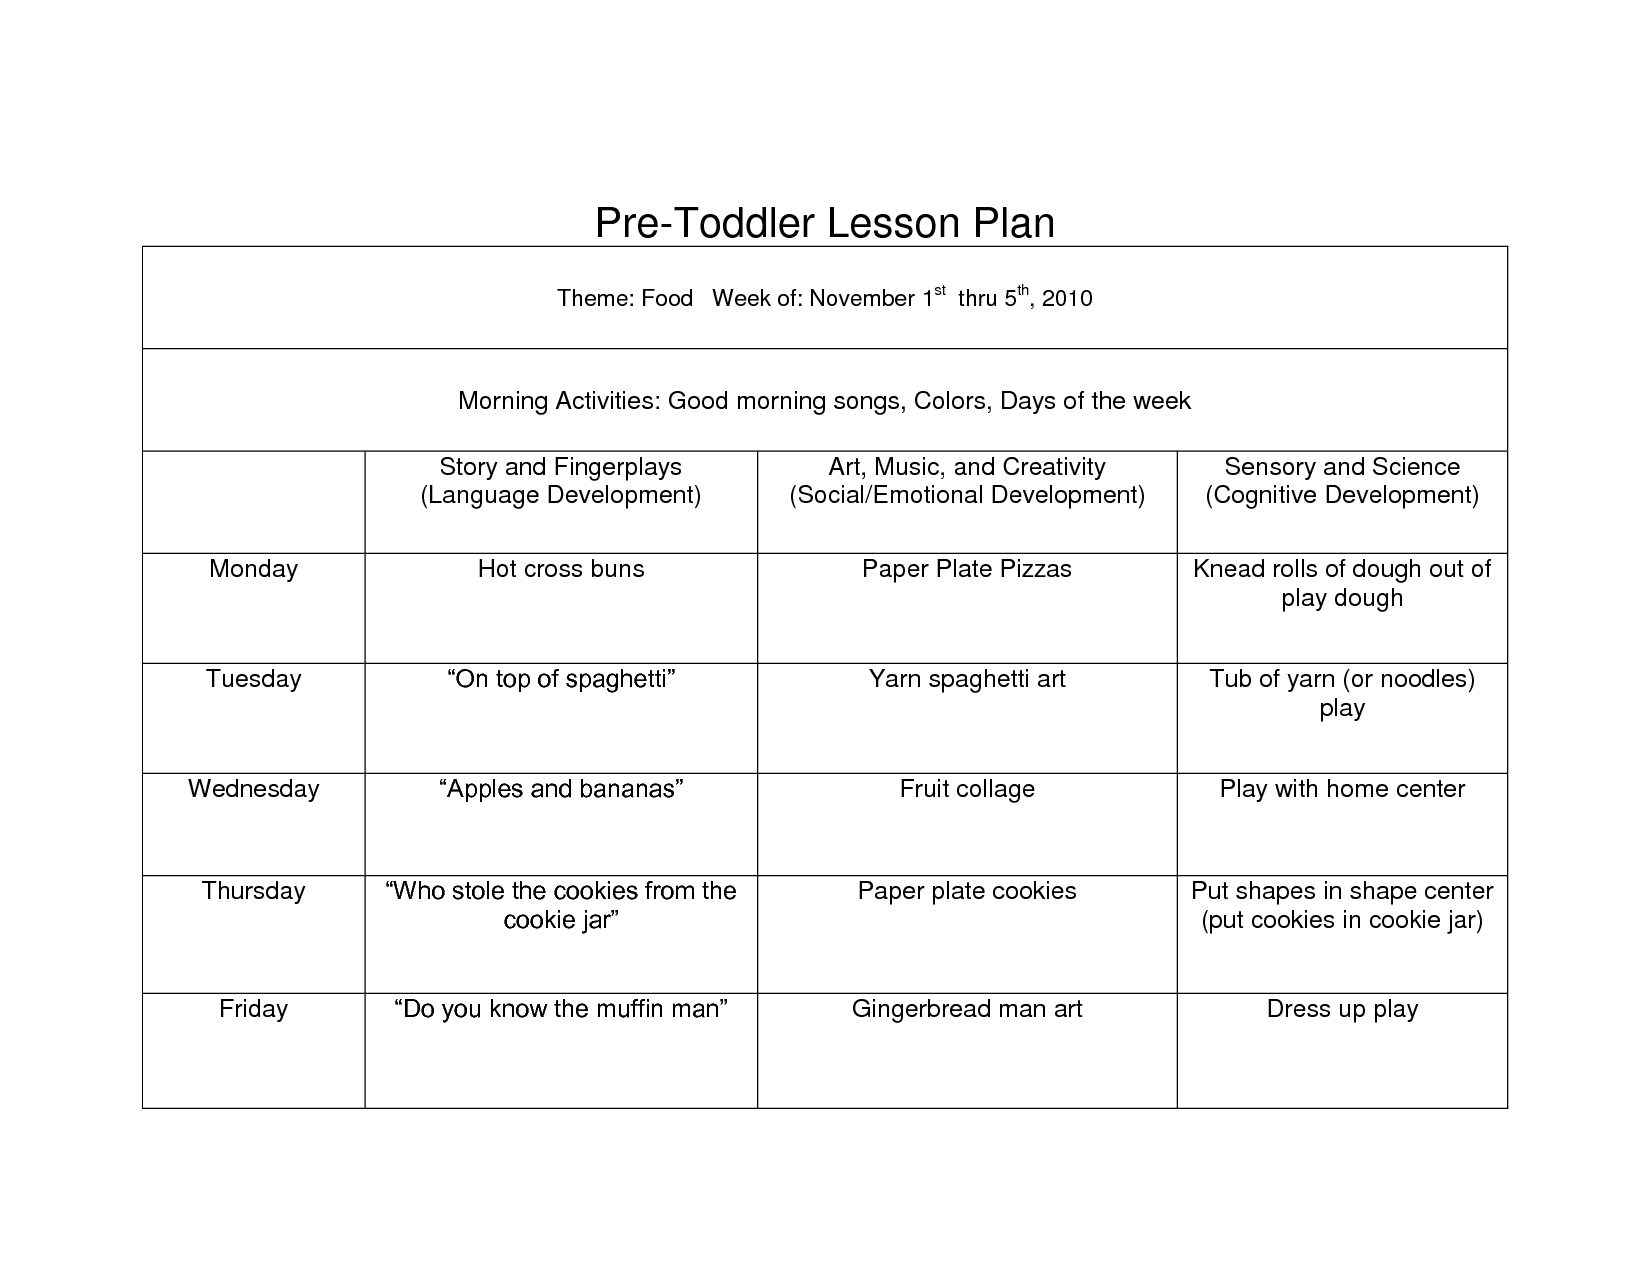 Creative Curriculum Blank Lesson Plan WCC Pre Toddler Curriculum - Creative curriculum lesson plan template for infants and toddlers